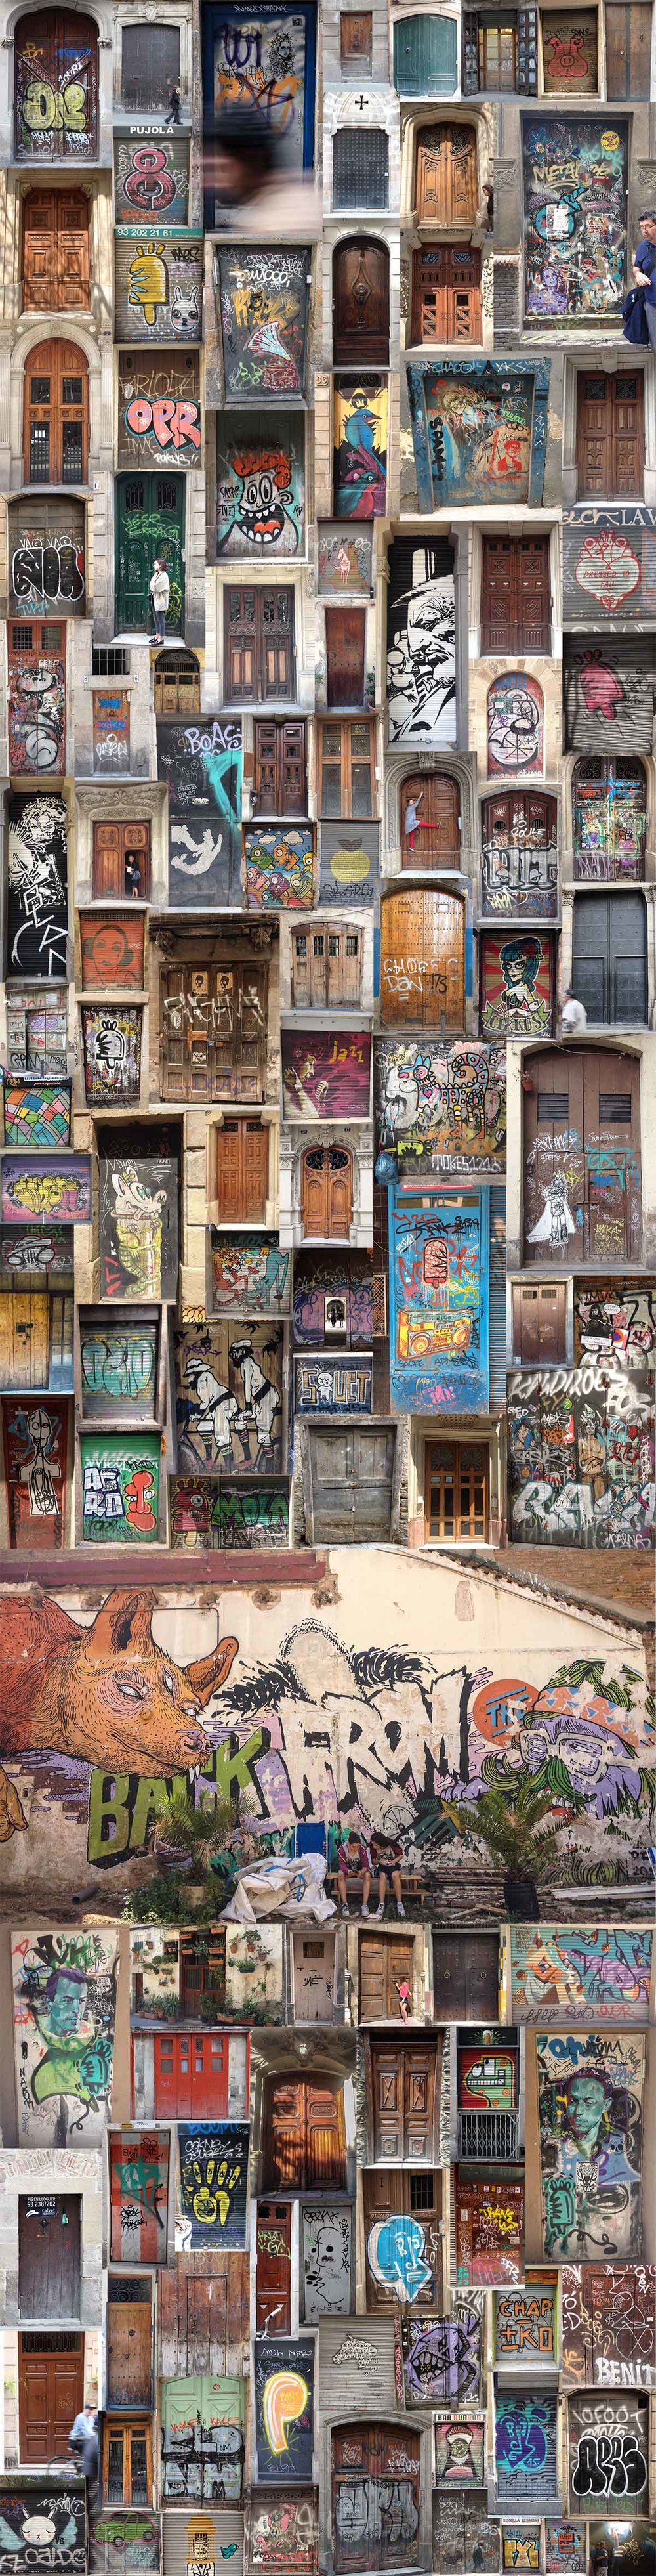 The amazing doors and street art of Barcelona